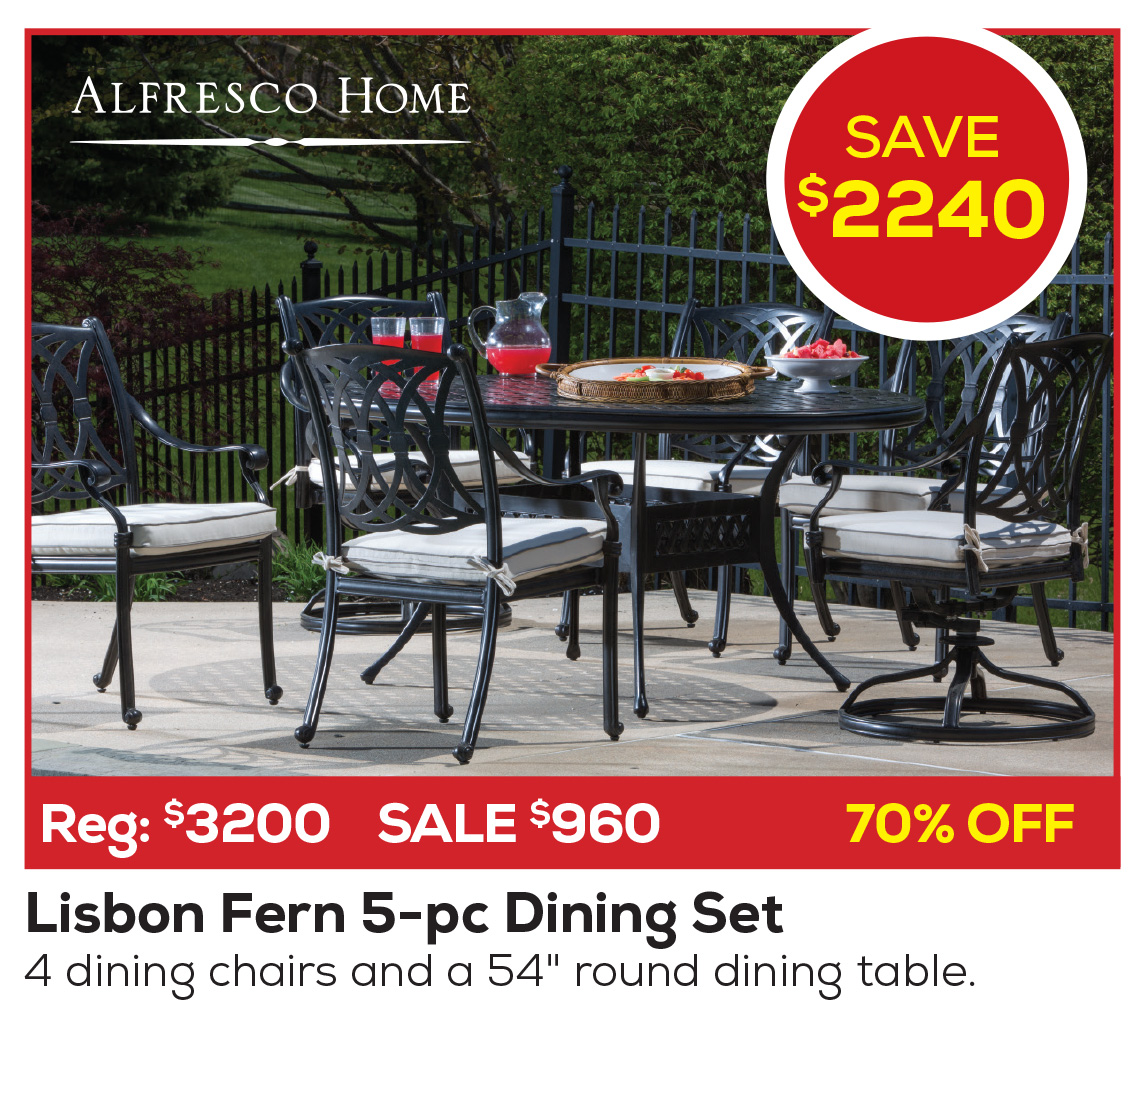 Alfresco Dining Deals